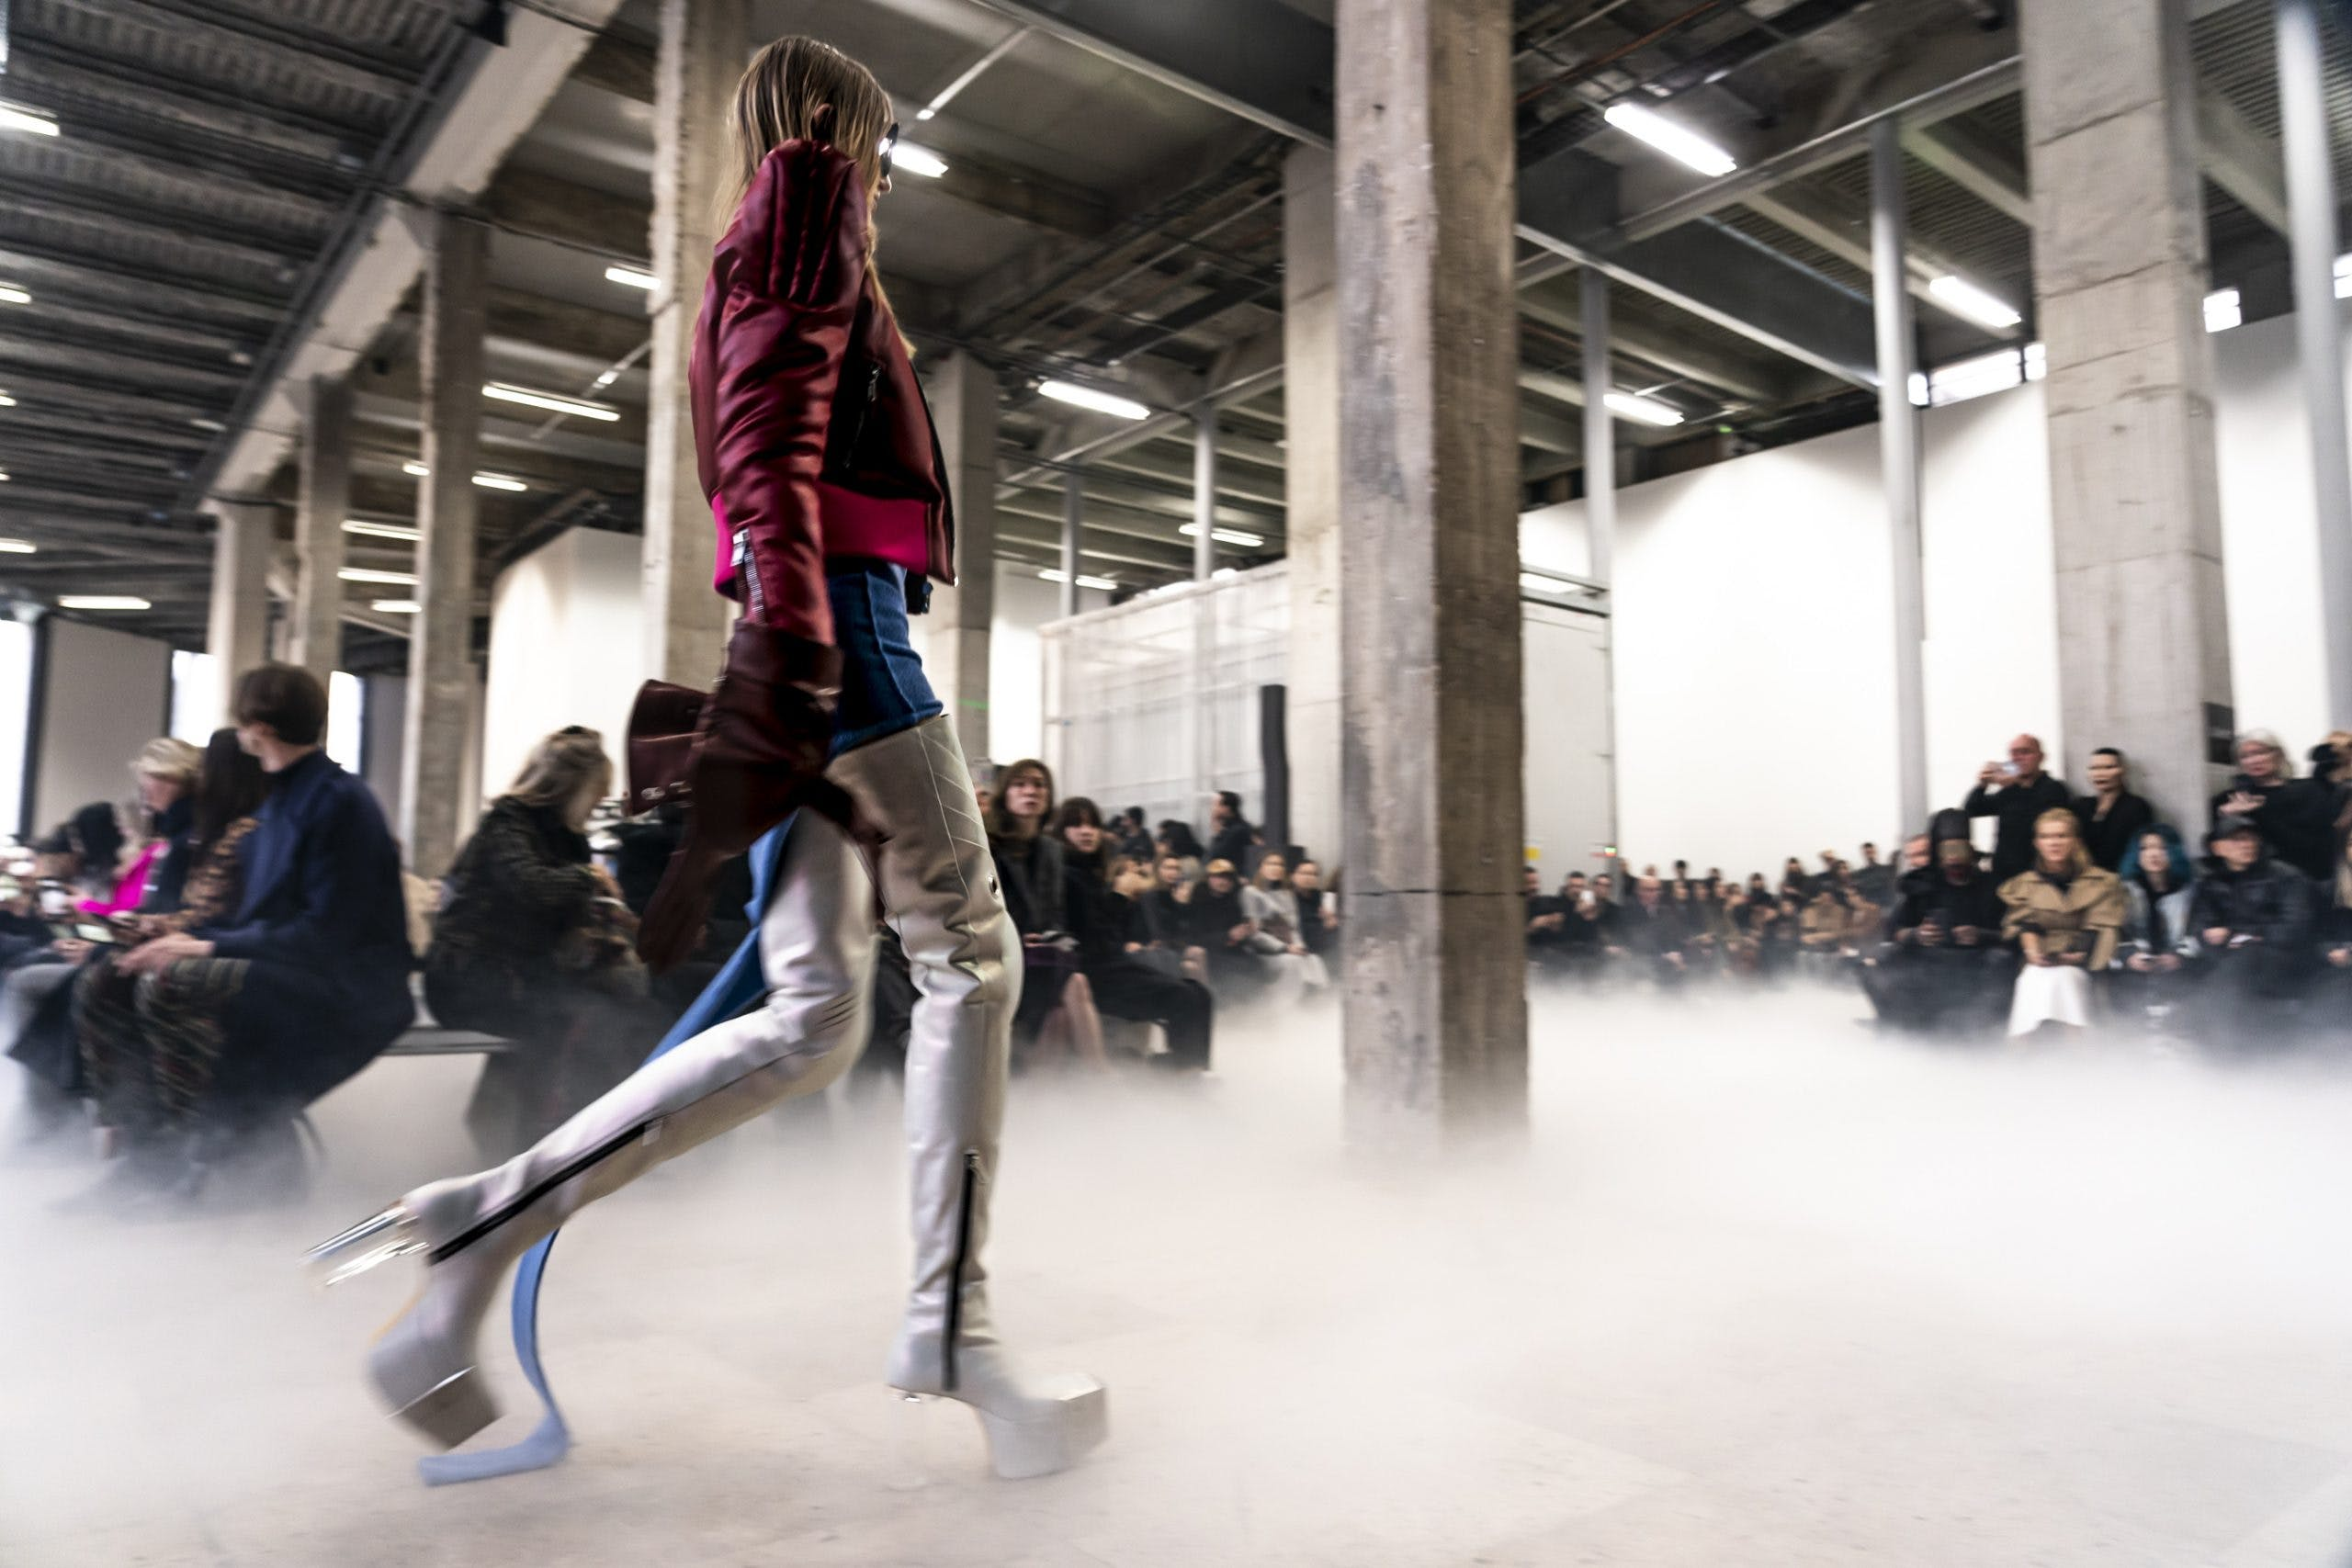 Rick Owens Runway Sharp Shoulder Flight Jacket Knot Dress in Blue Thigh High Leather Kiss Grill Boots in White With Transparent Heel Womens FW20 Performa